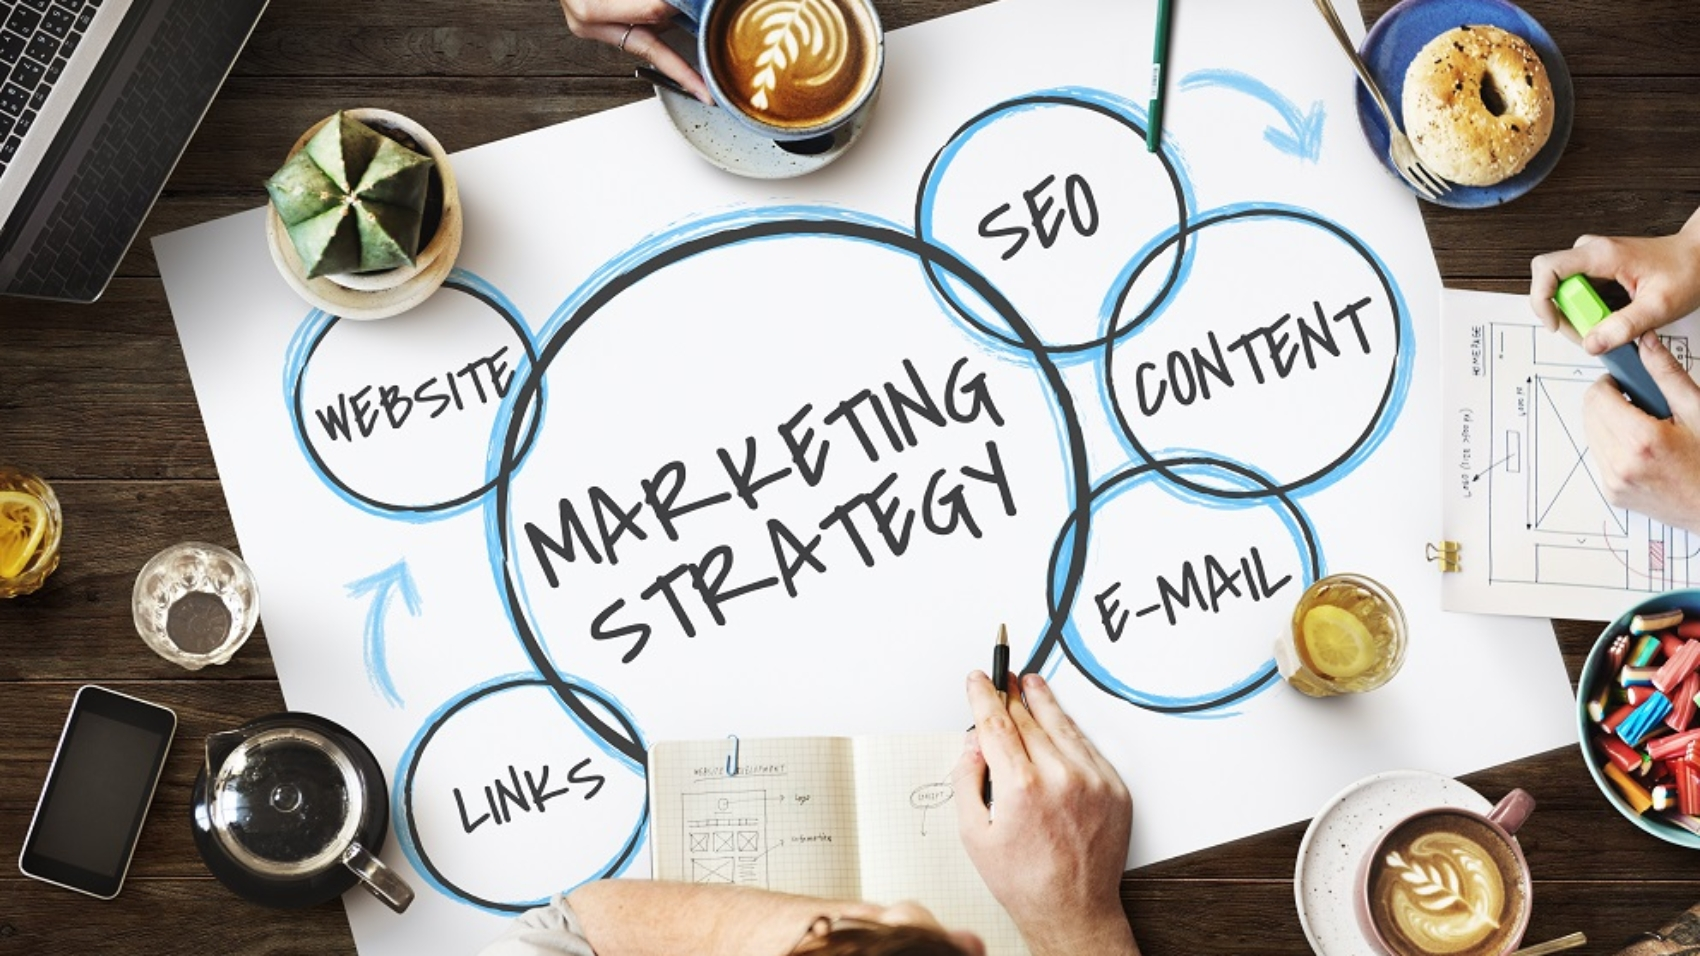 Digital marketing strategy includes finding the best email marketing service